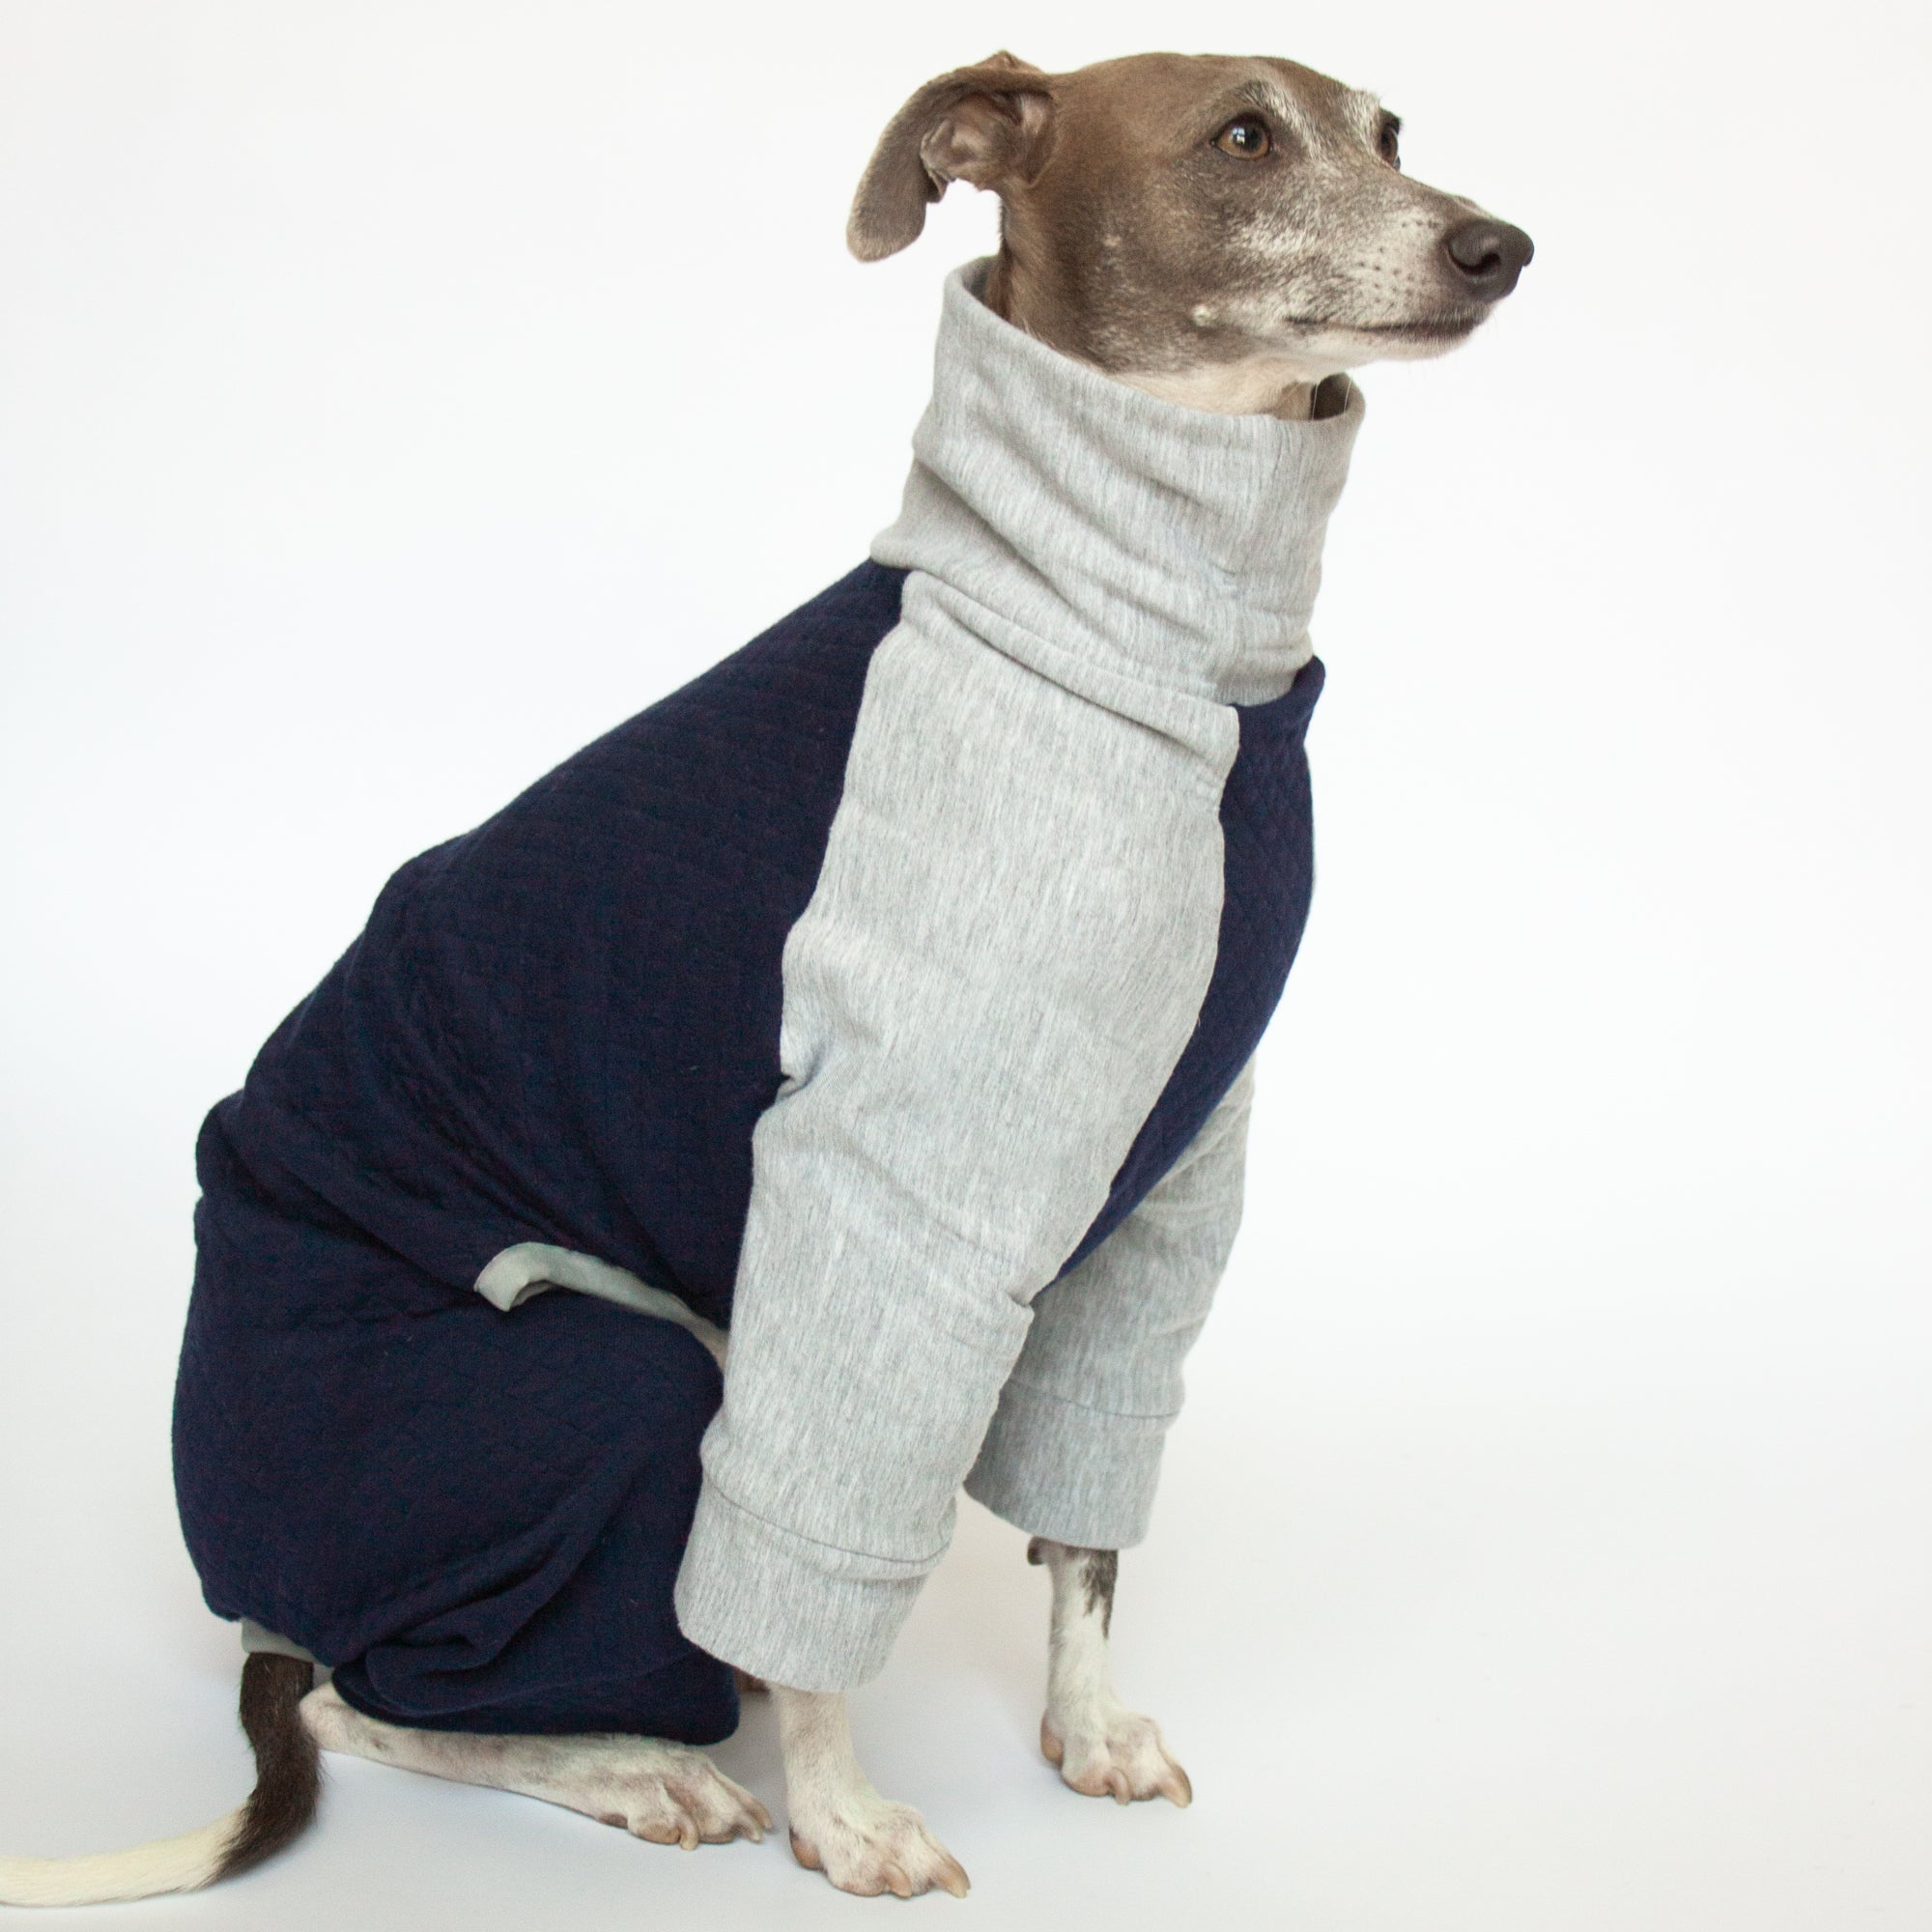 greyhound sitting in quilted dog pajamas navy blue and grey